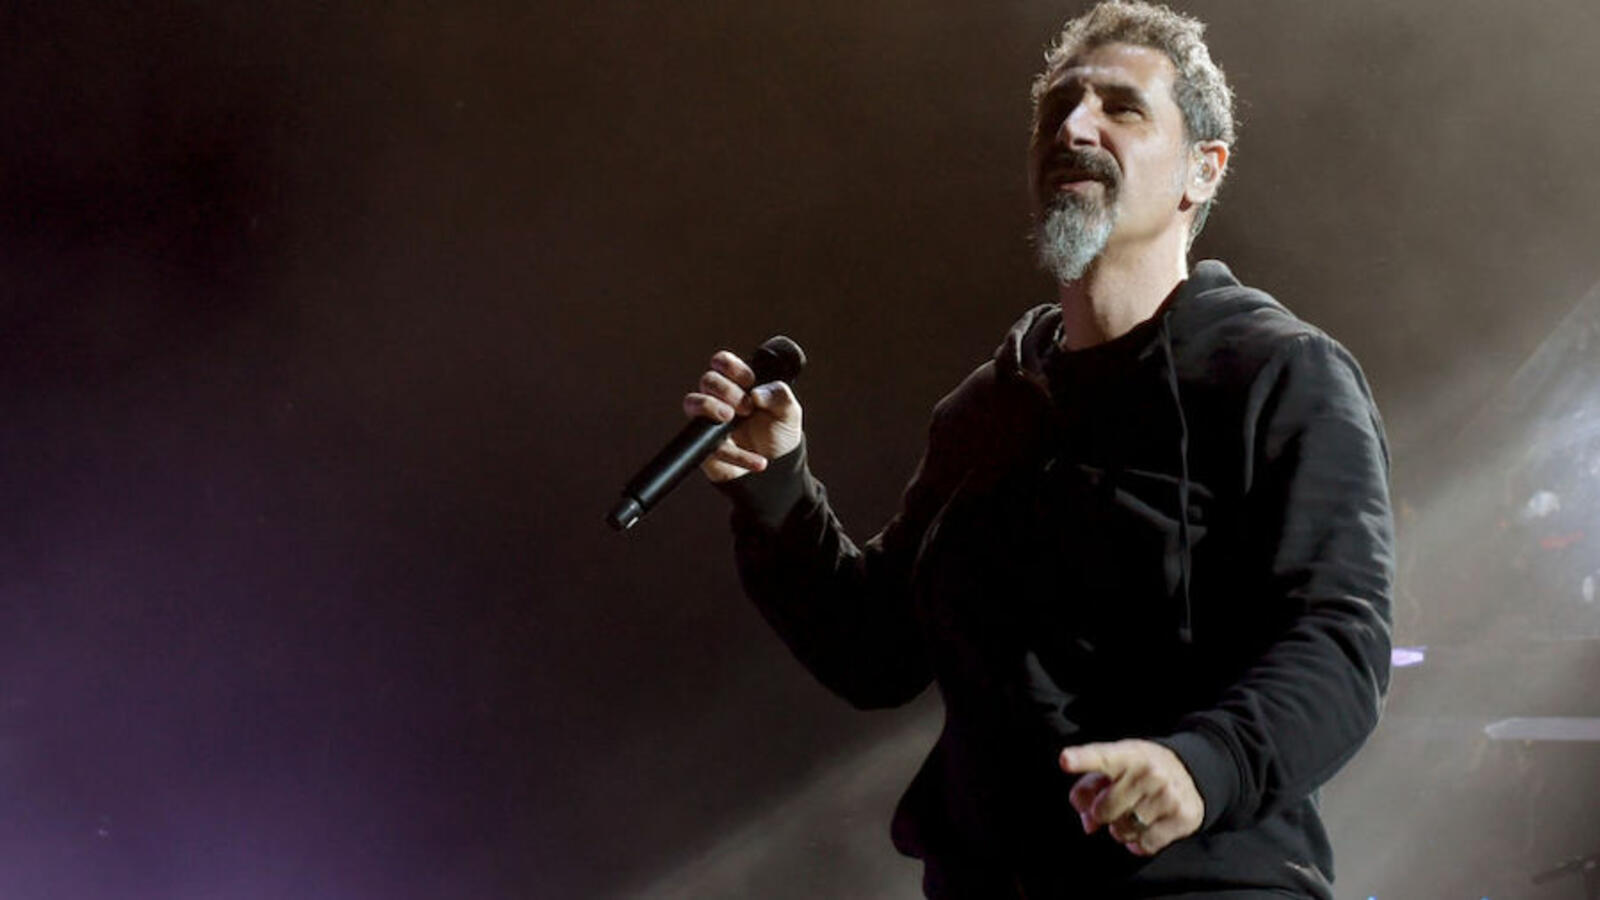 System Of A Down's Serj Tankian Tests Positive For COVID-19